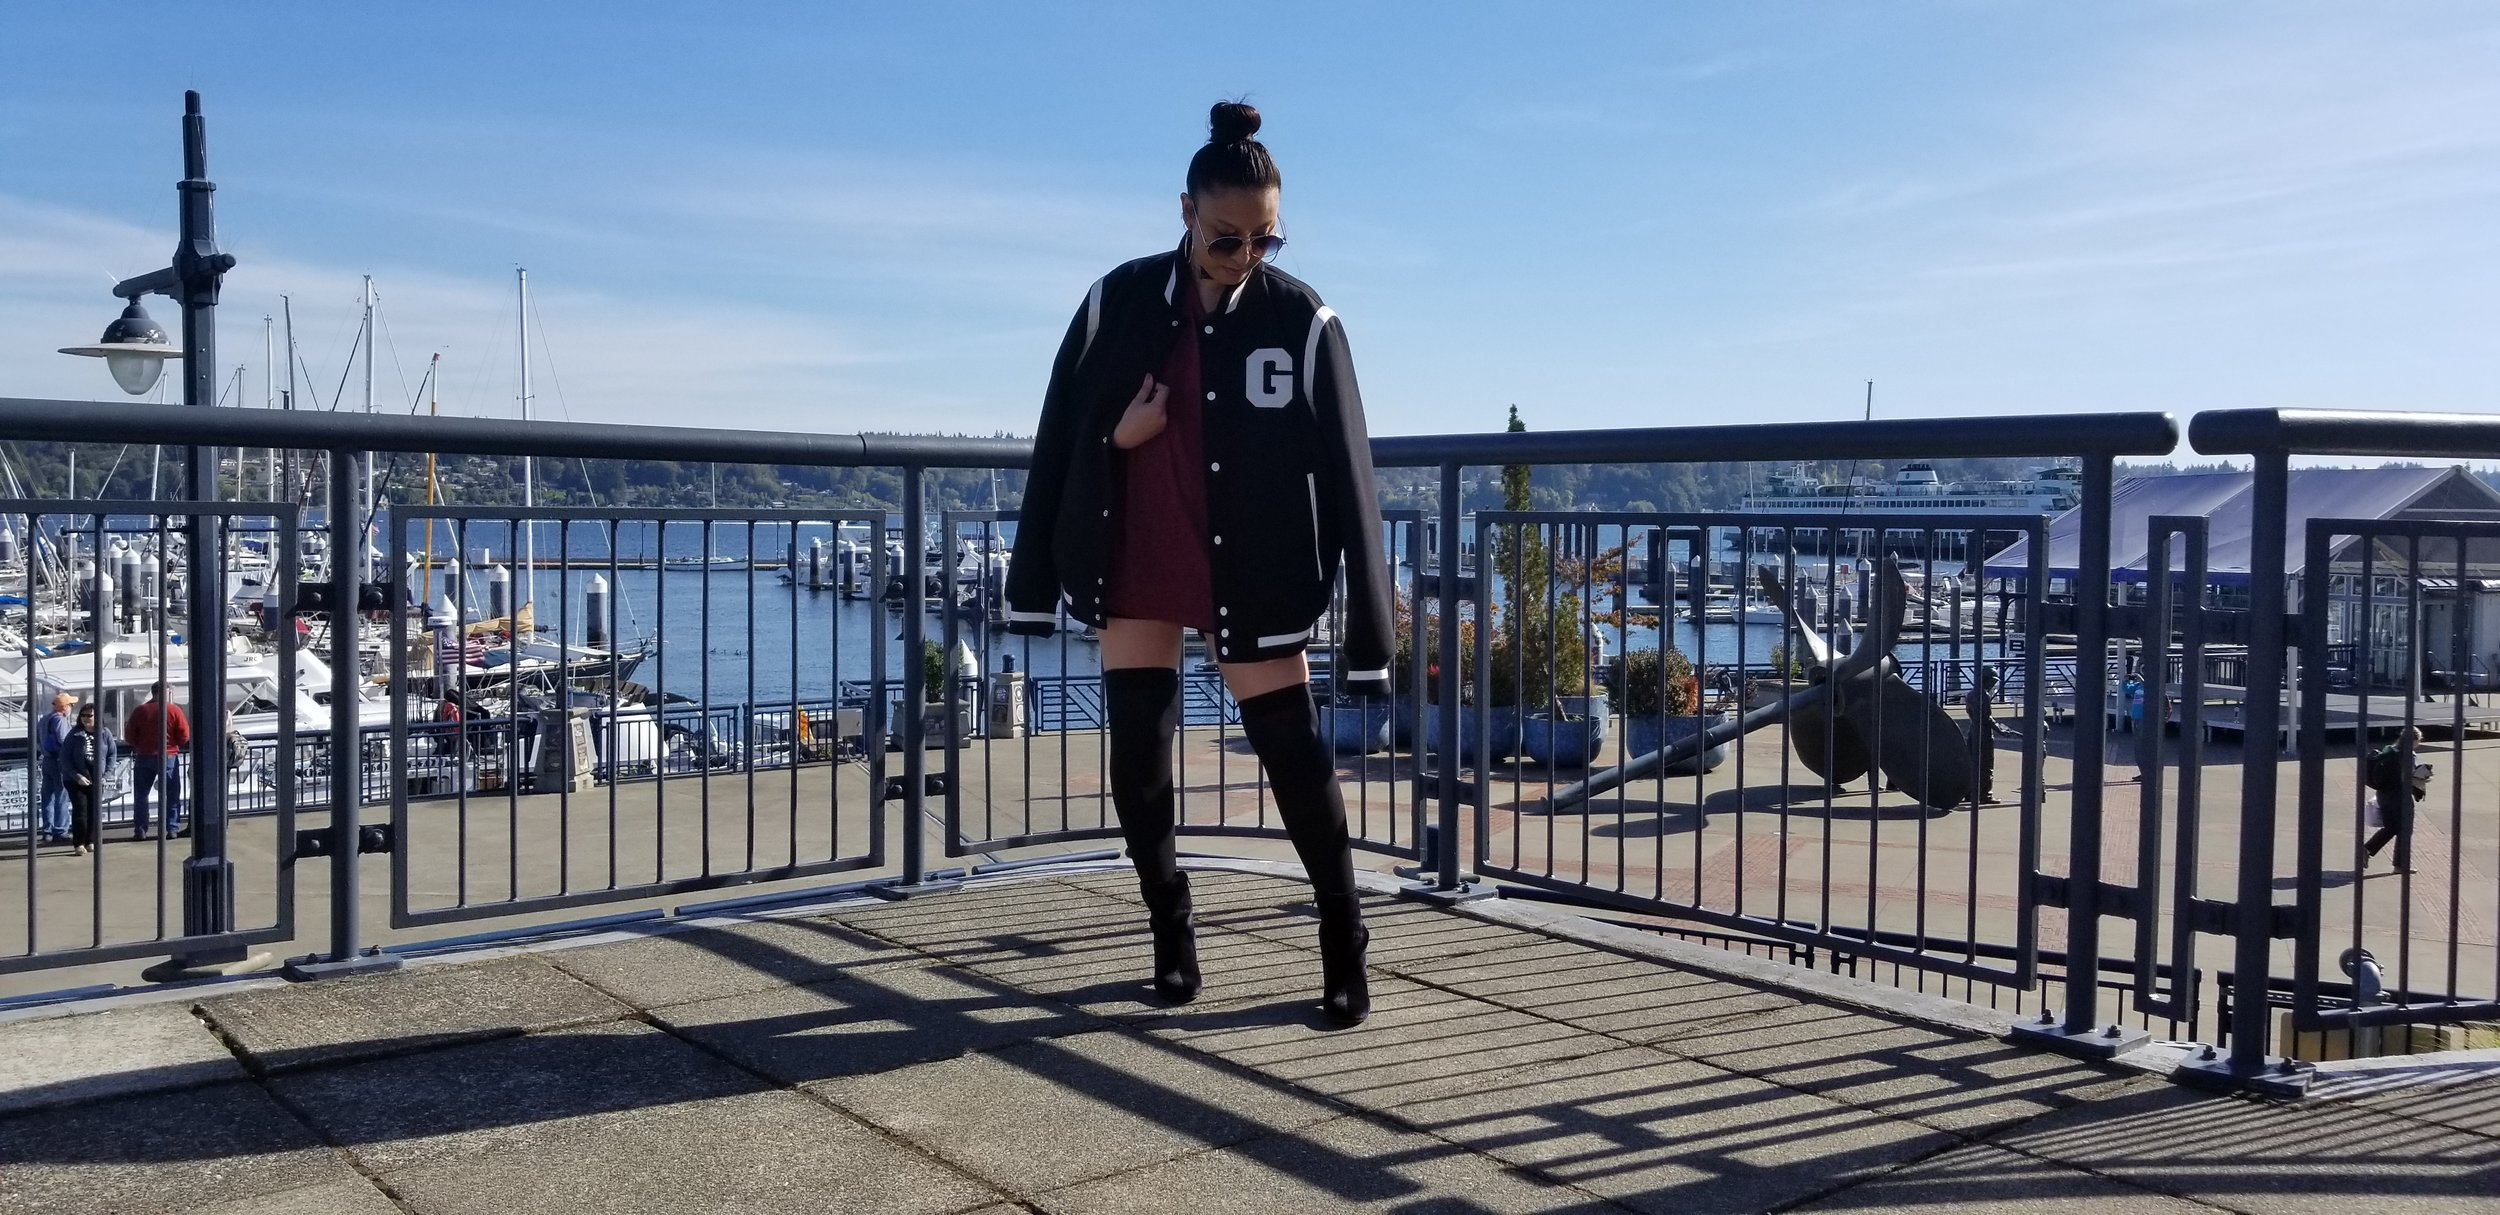 his jacket - With the weather getting chilly, I threw on my man's Guess jacket. I am all about the bomber varsity feel. This over-sized jacket not only keeps me warm but it's stylish too!